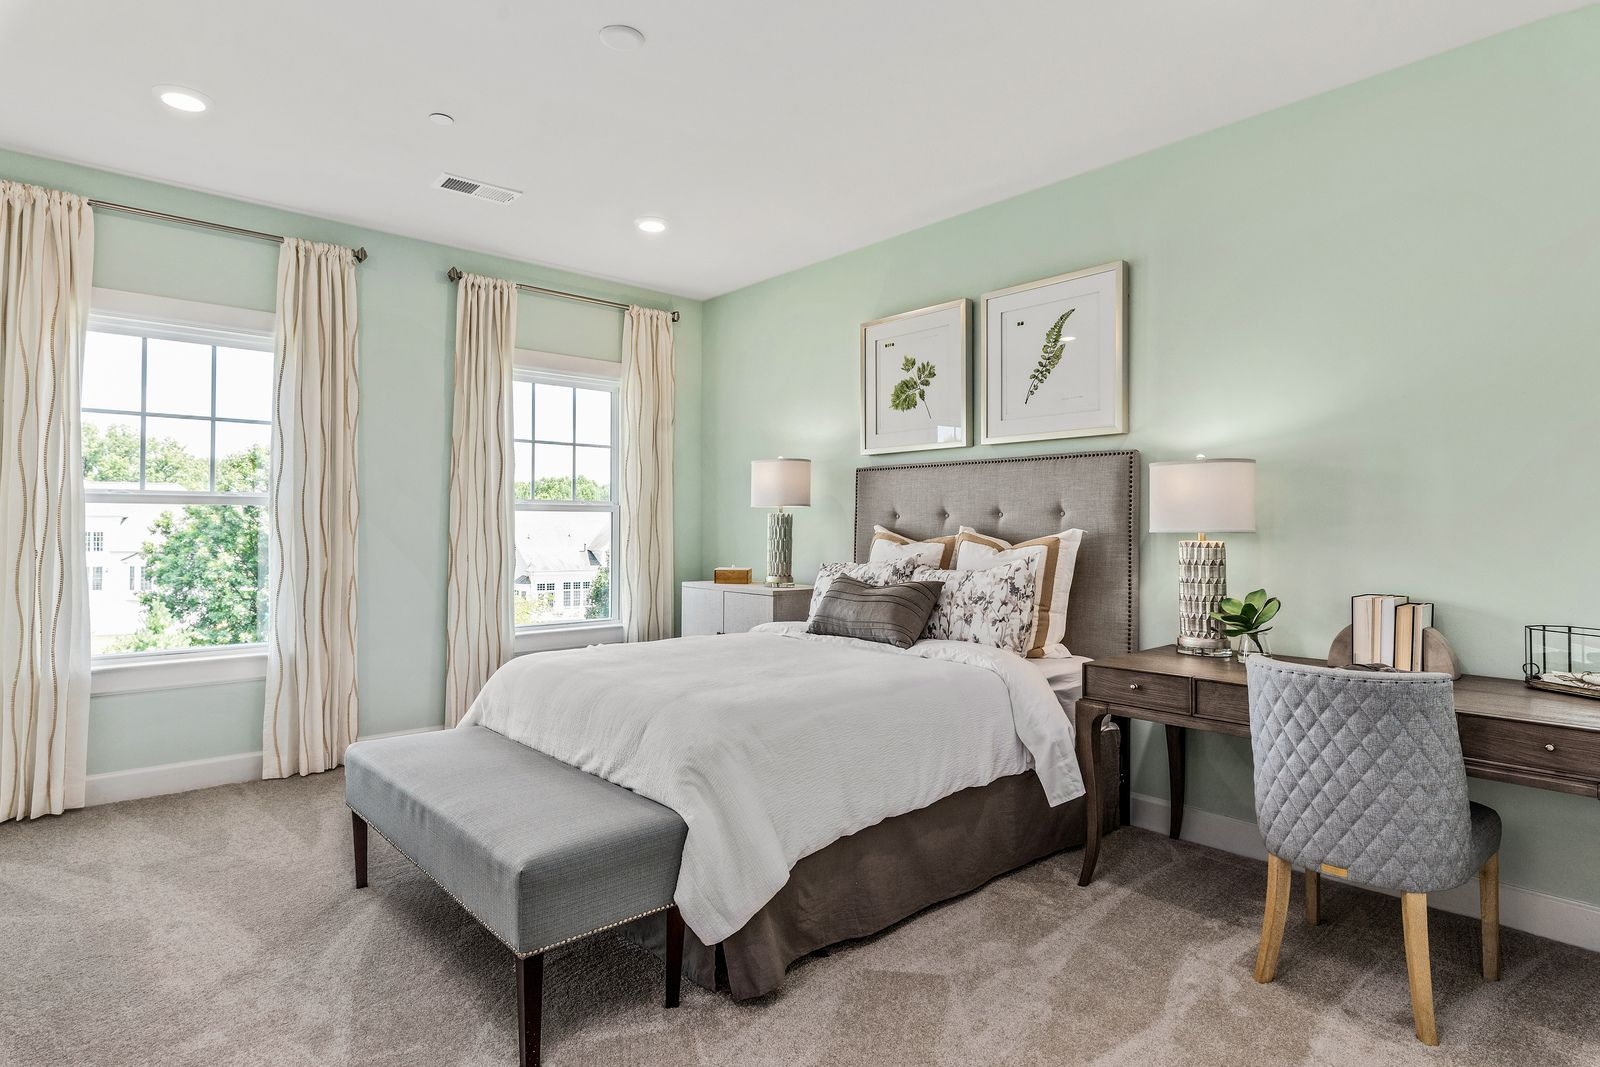 Bedroom featured in the Marymount By NVHomes in Washington, VA